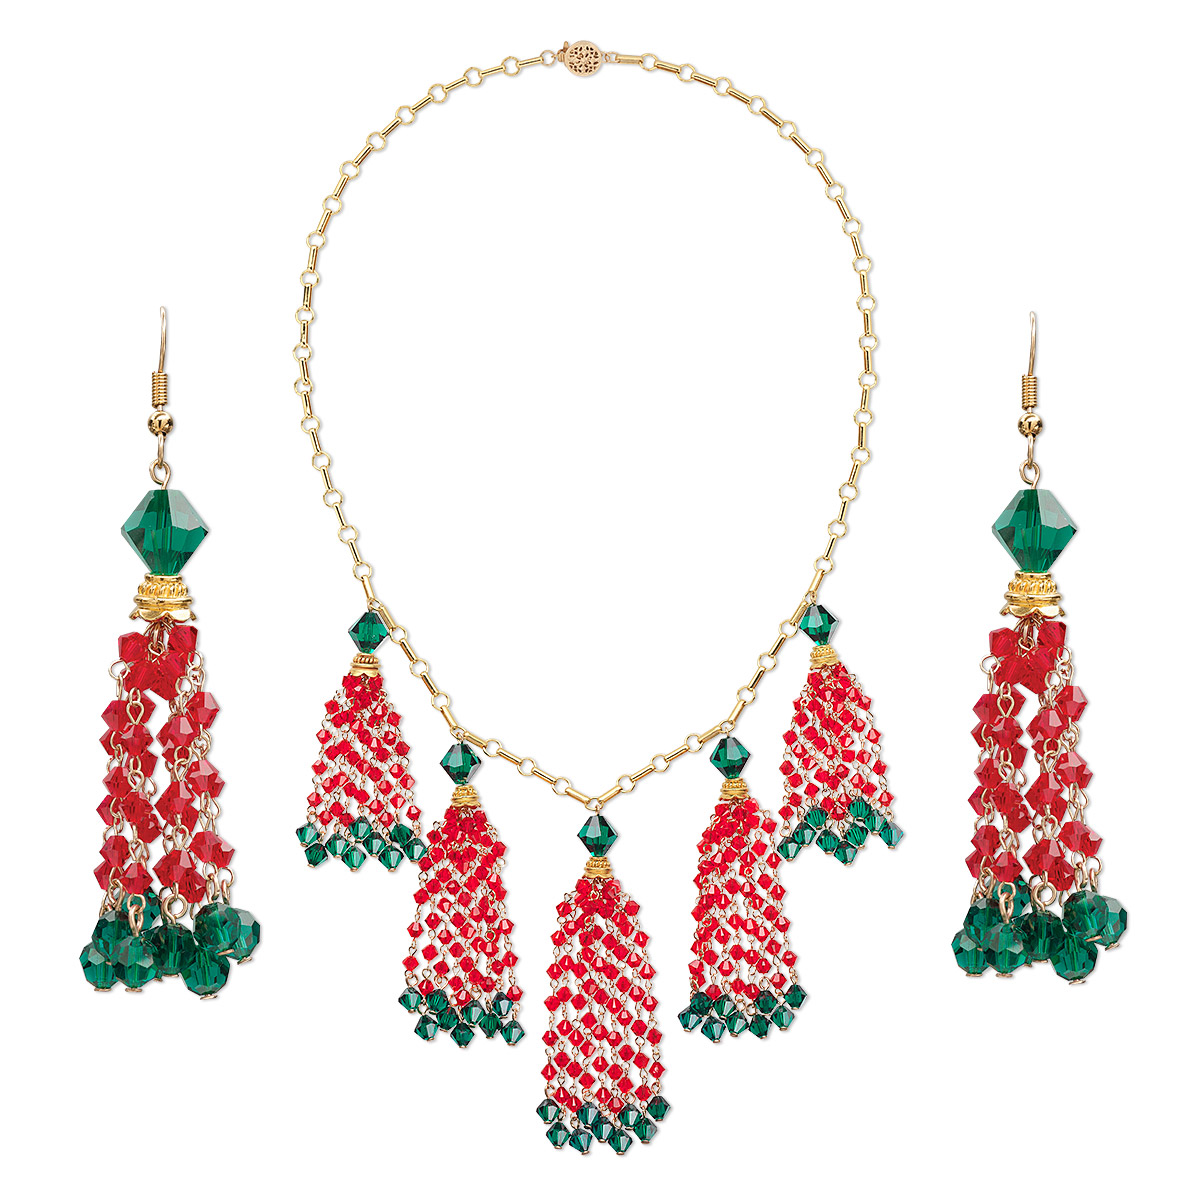 de009cdfc1b3f Necklace and earring set, One of a Kind Jewelry, Swarovski® crystals ...